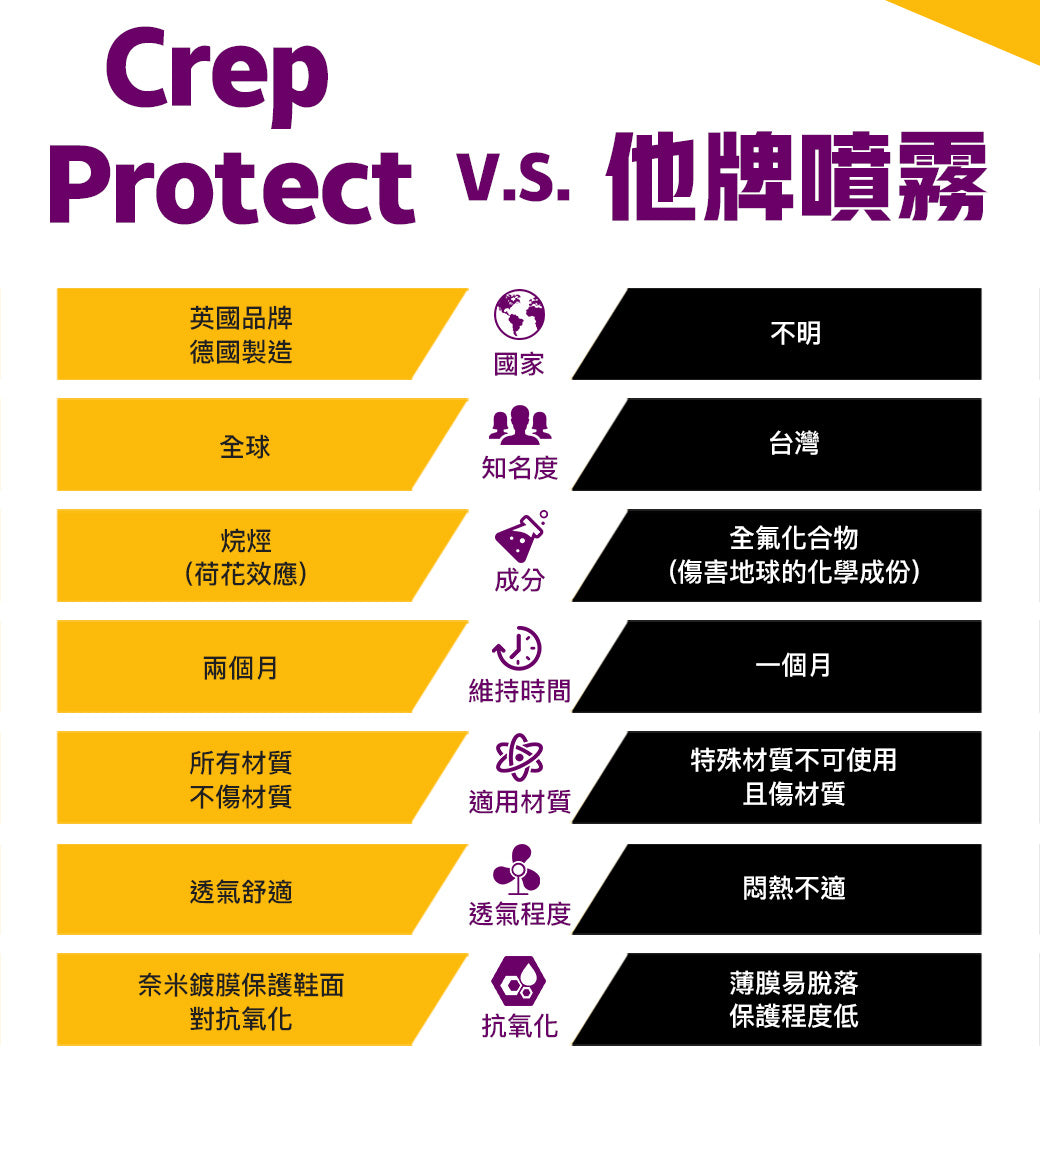 Crep Protect - 納米科技抗污防水噴霧|200ml|Rain and stain protection